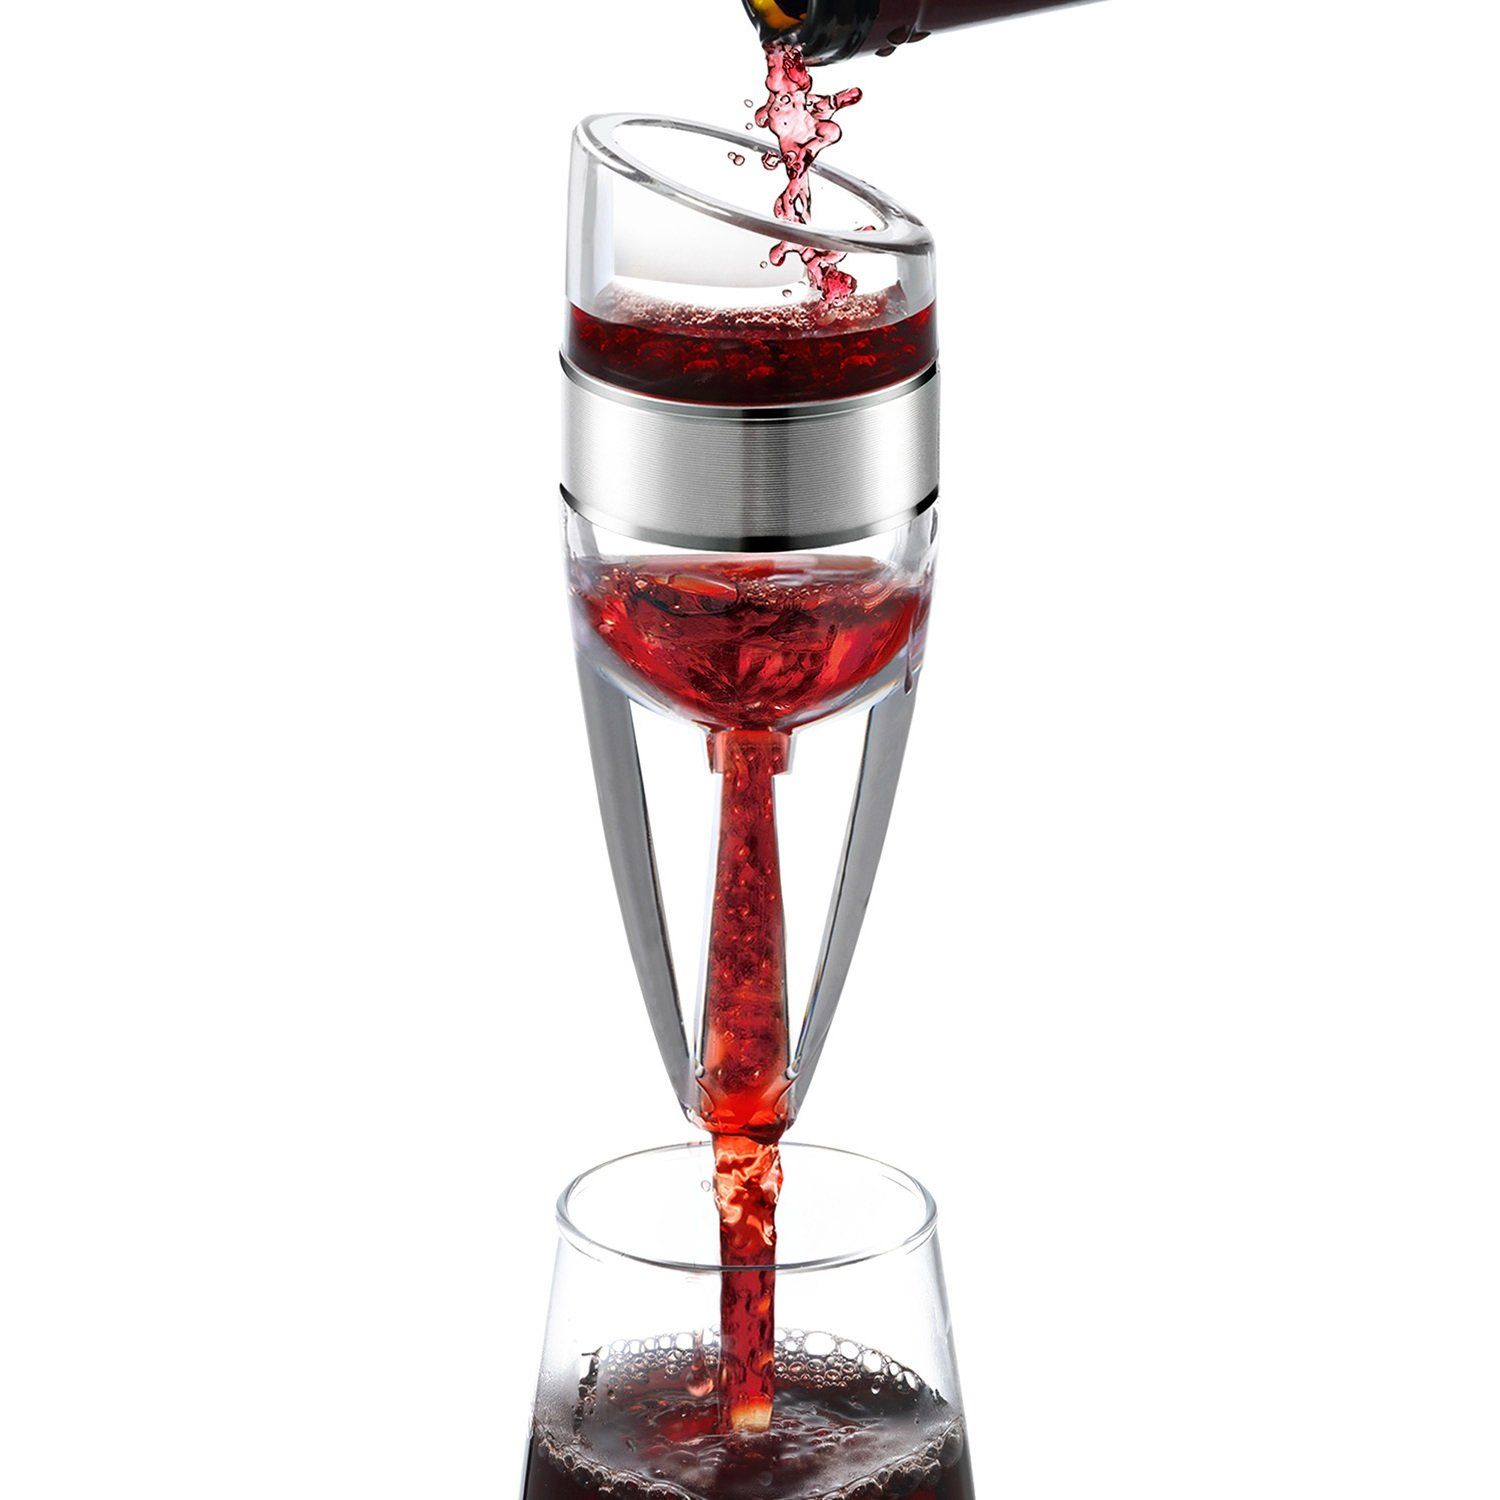 Slpstroe Intl Wine Aerator Diffuser Pourer Decanter Includes Base To View Further For This Item Visit The Image Link This Is A Wine Aerators Wine Aerator